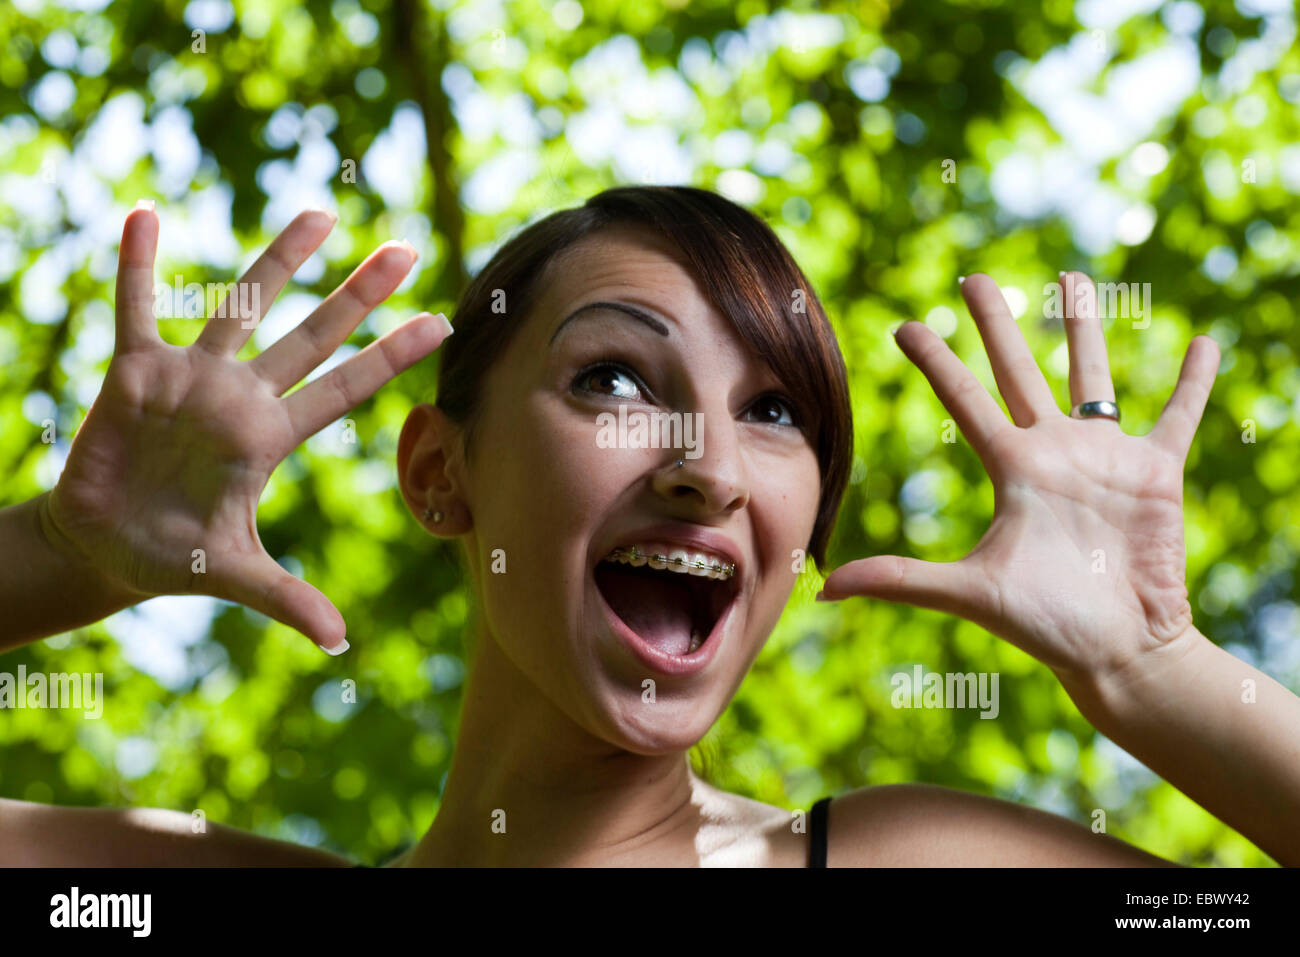 young woman with brackets makes a face Stock Photo